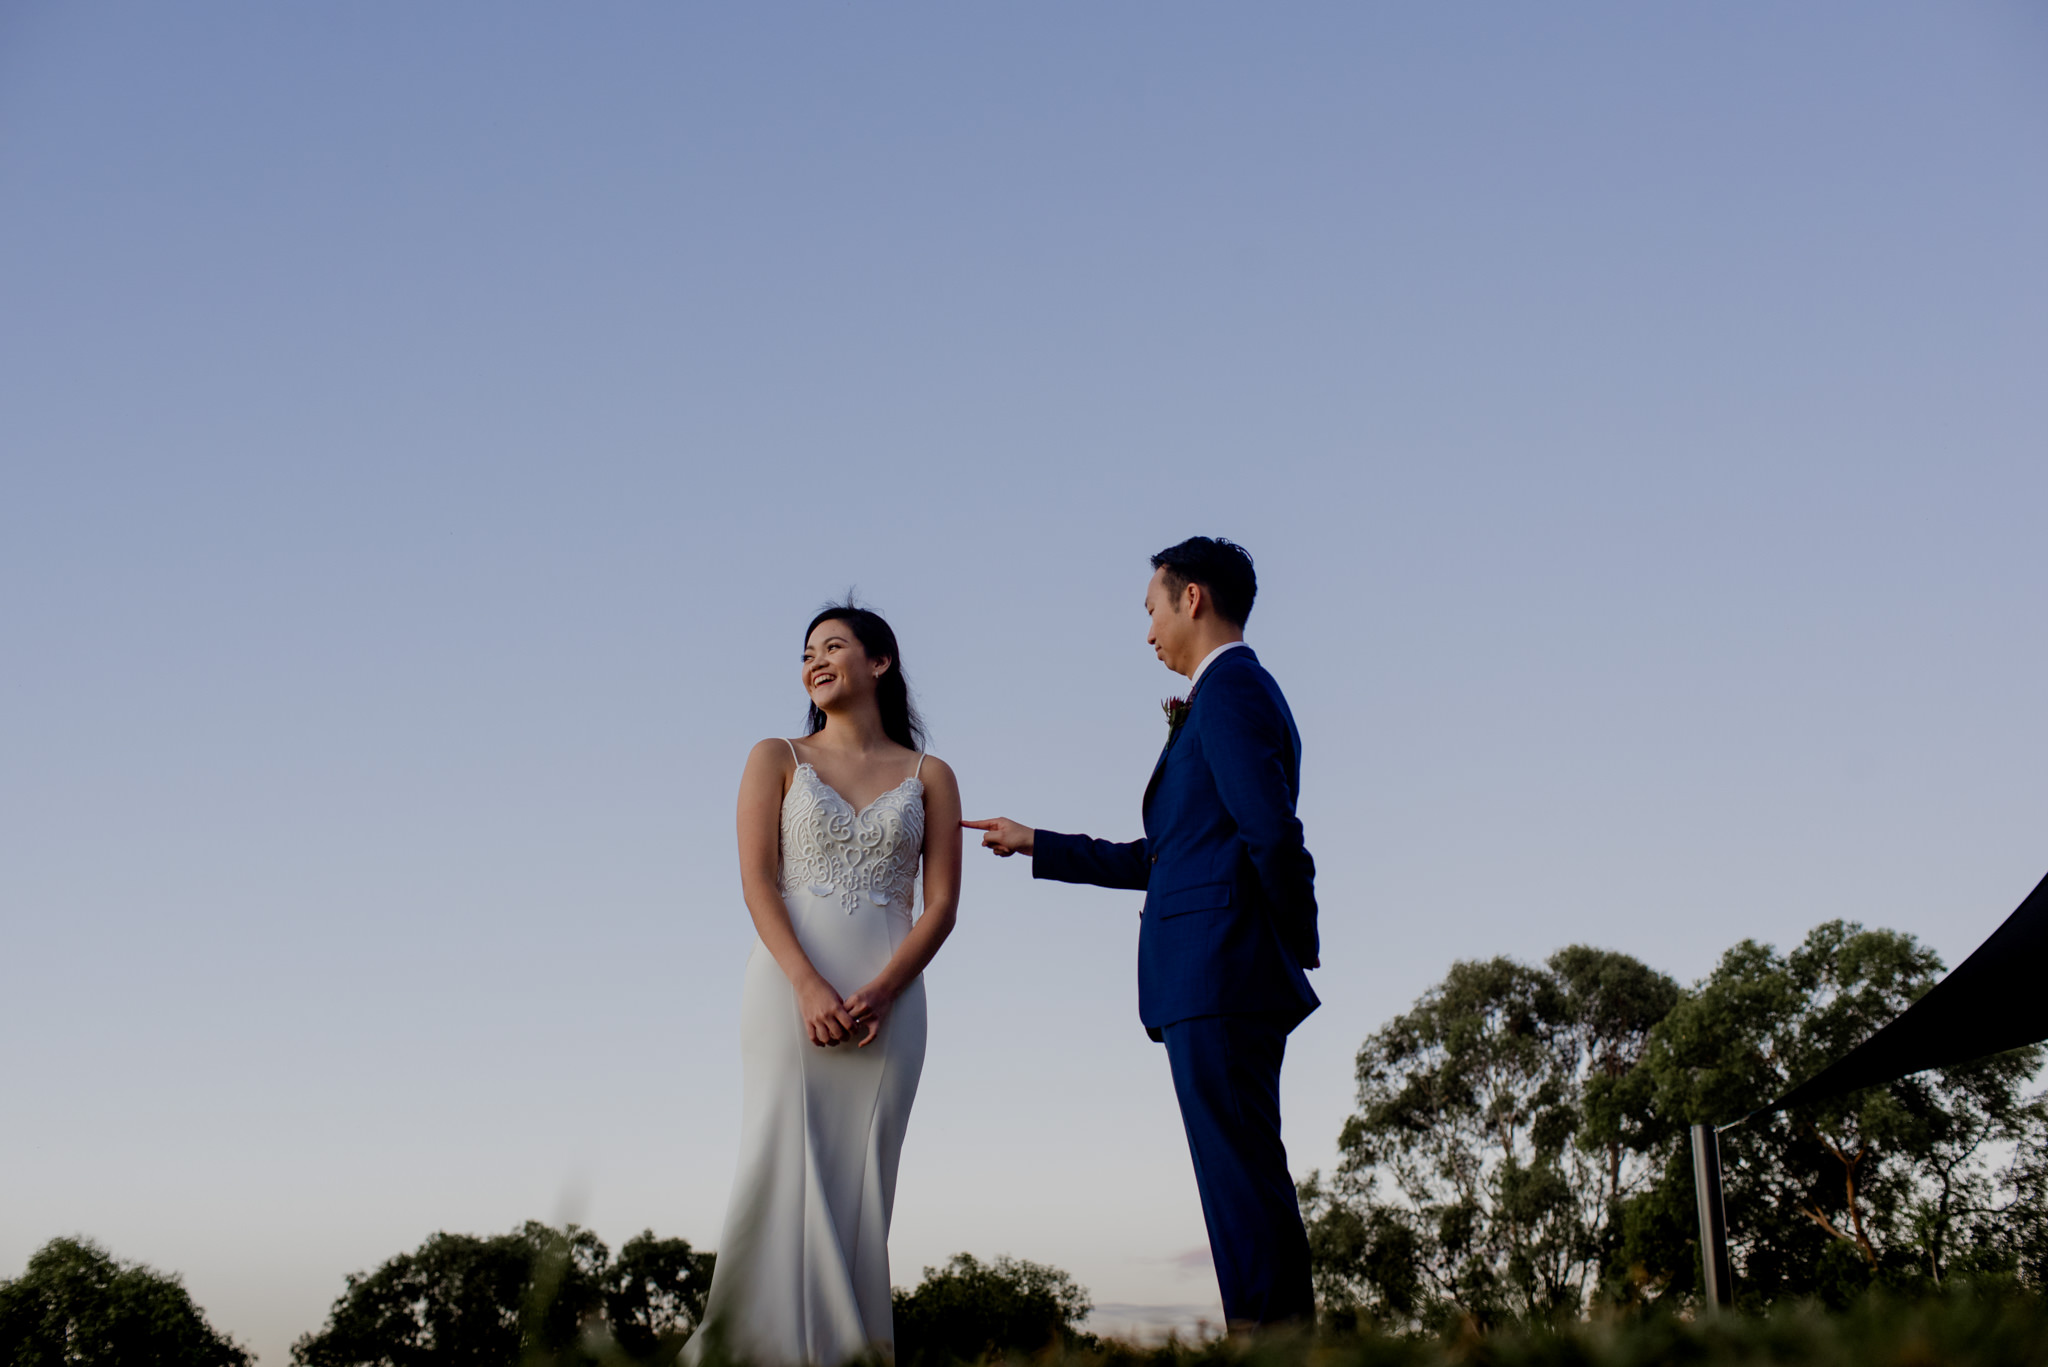 A bride laughs and faces away as her groom pokes her upper arm